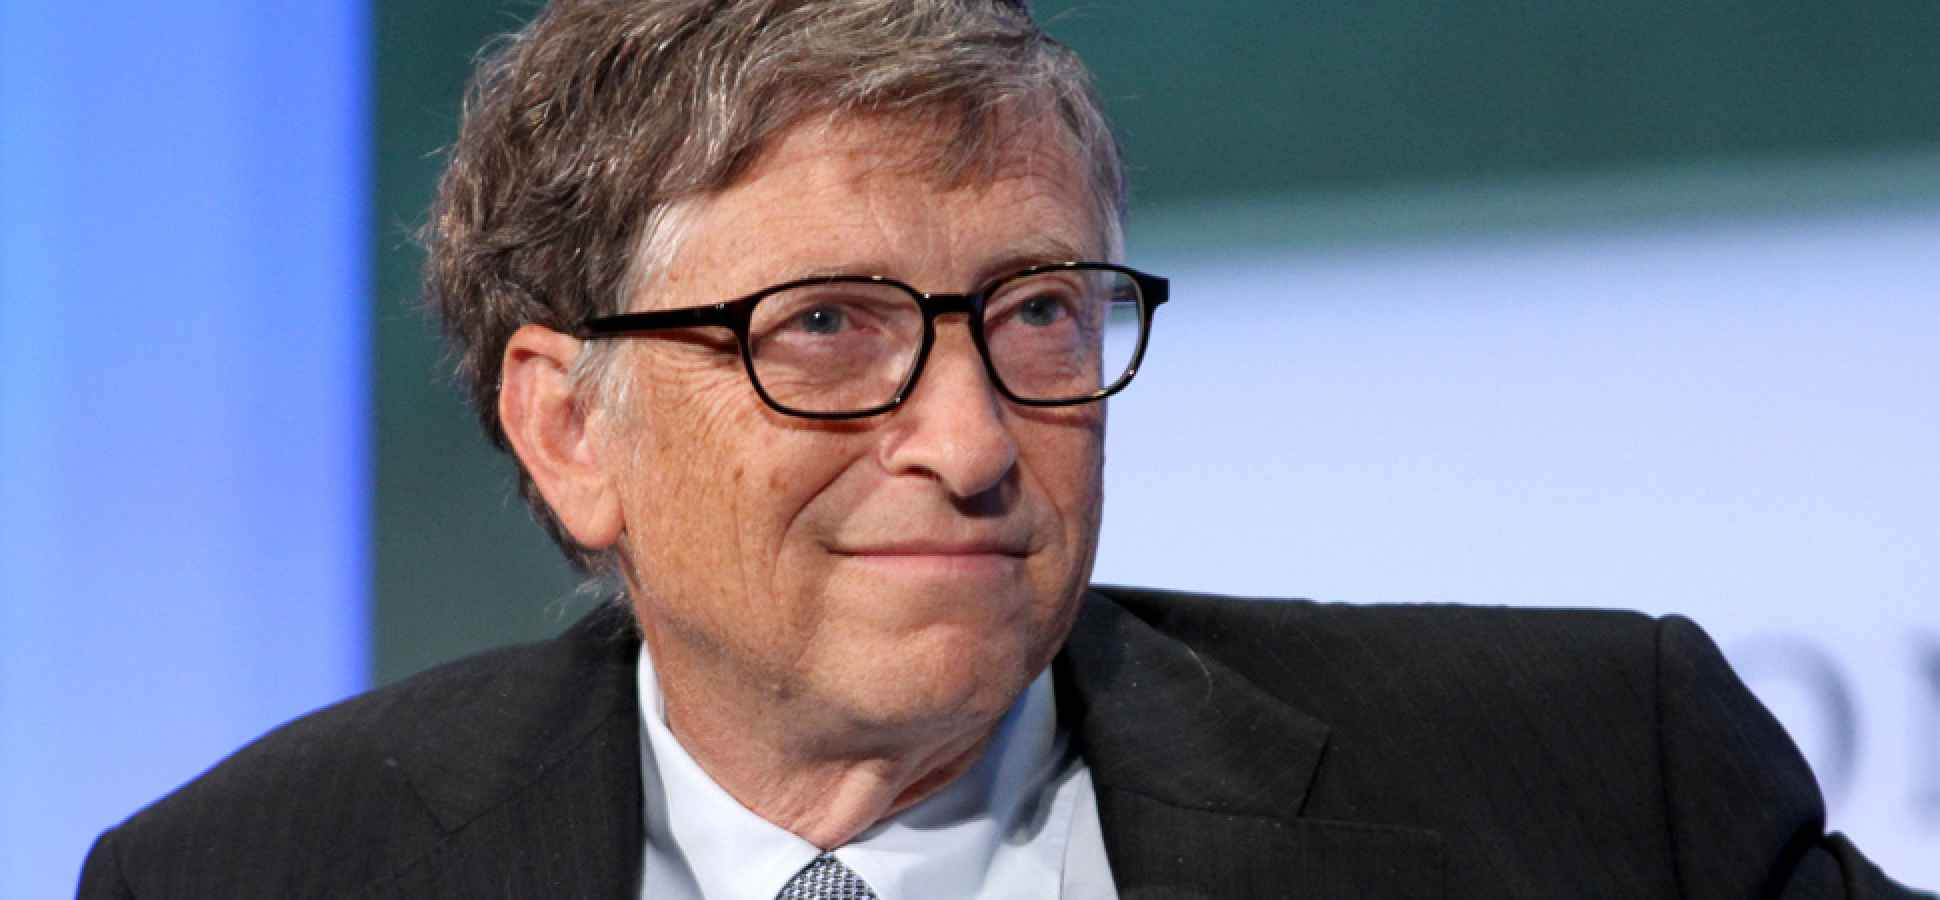 7 Lessons Learned From the World's Richest People